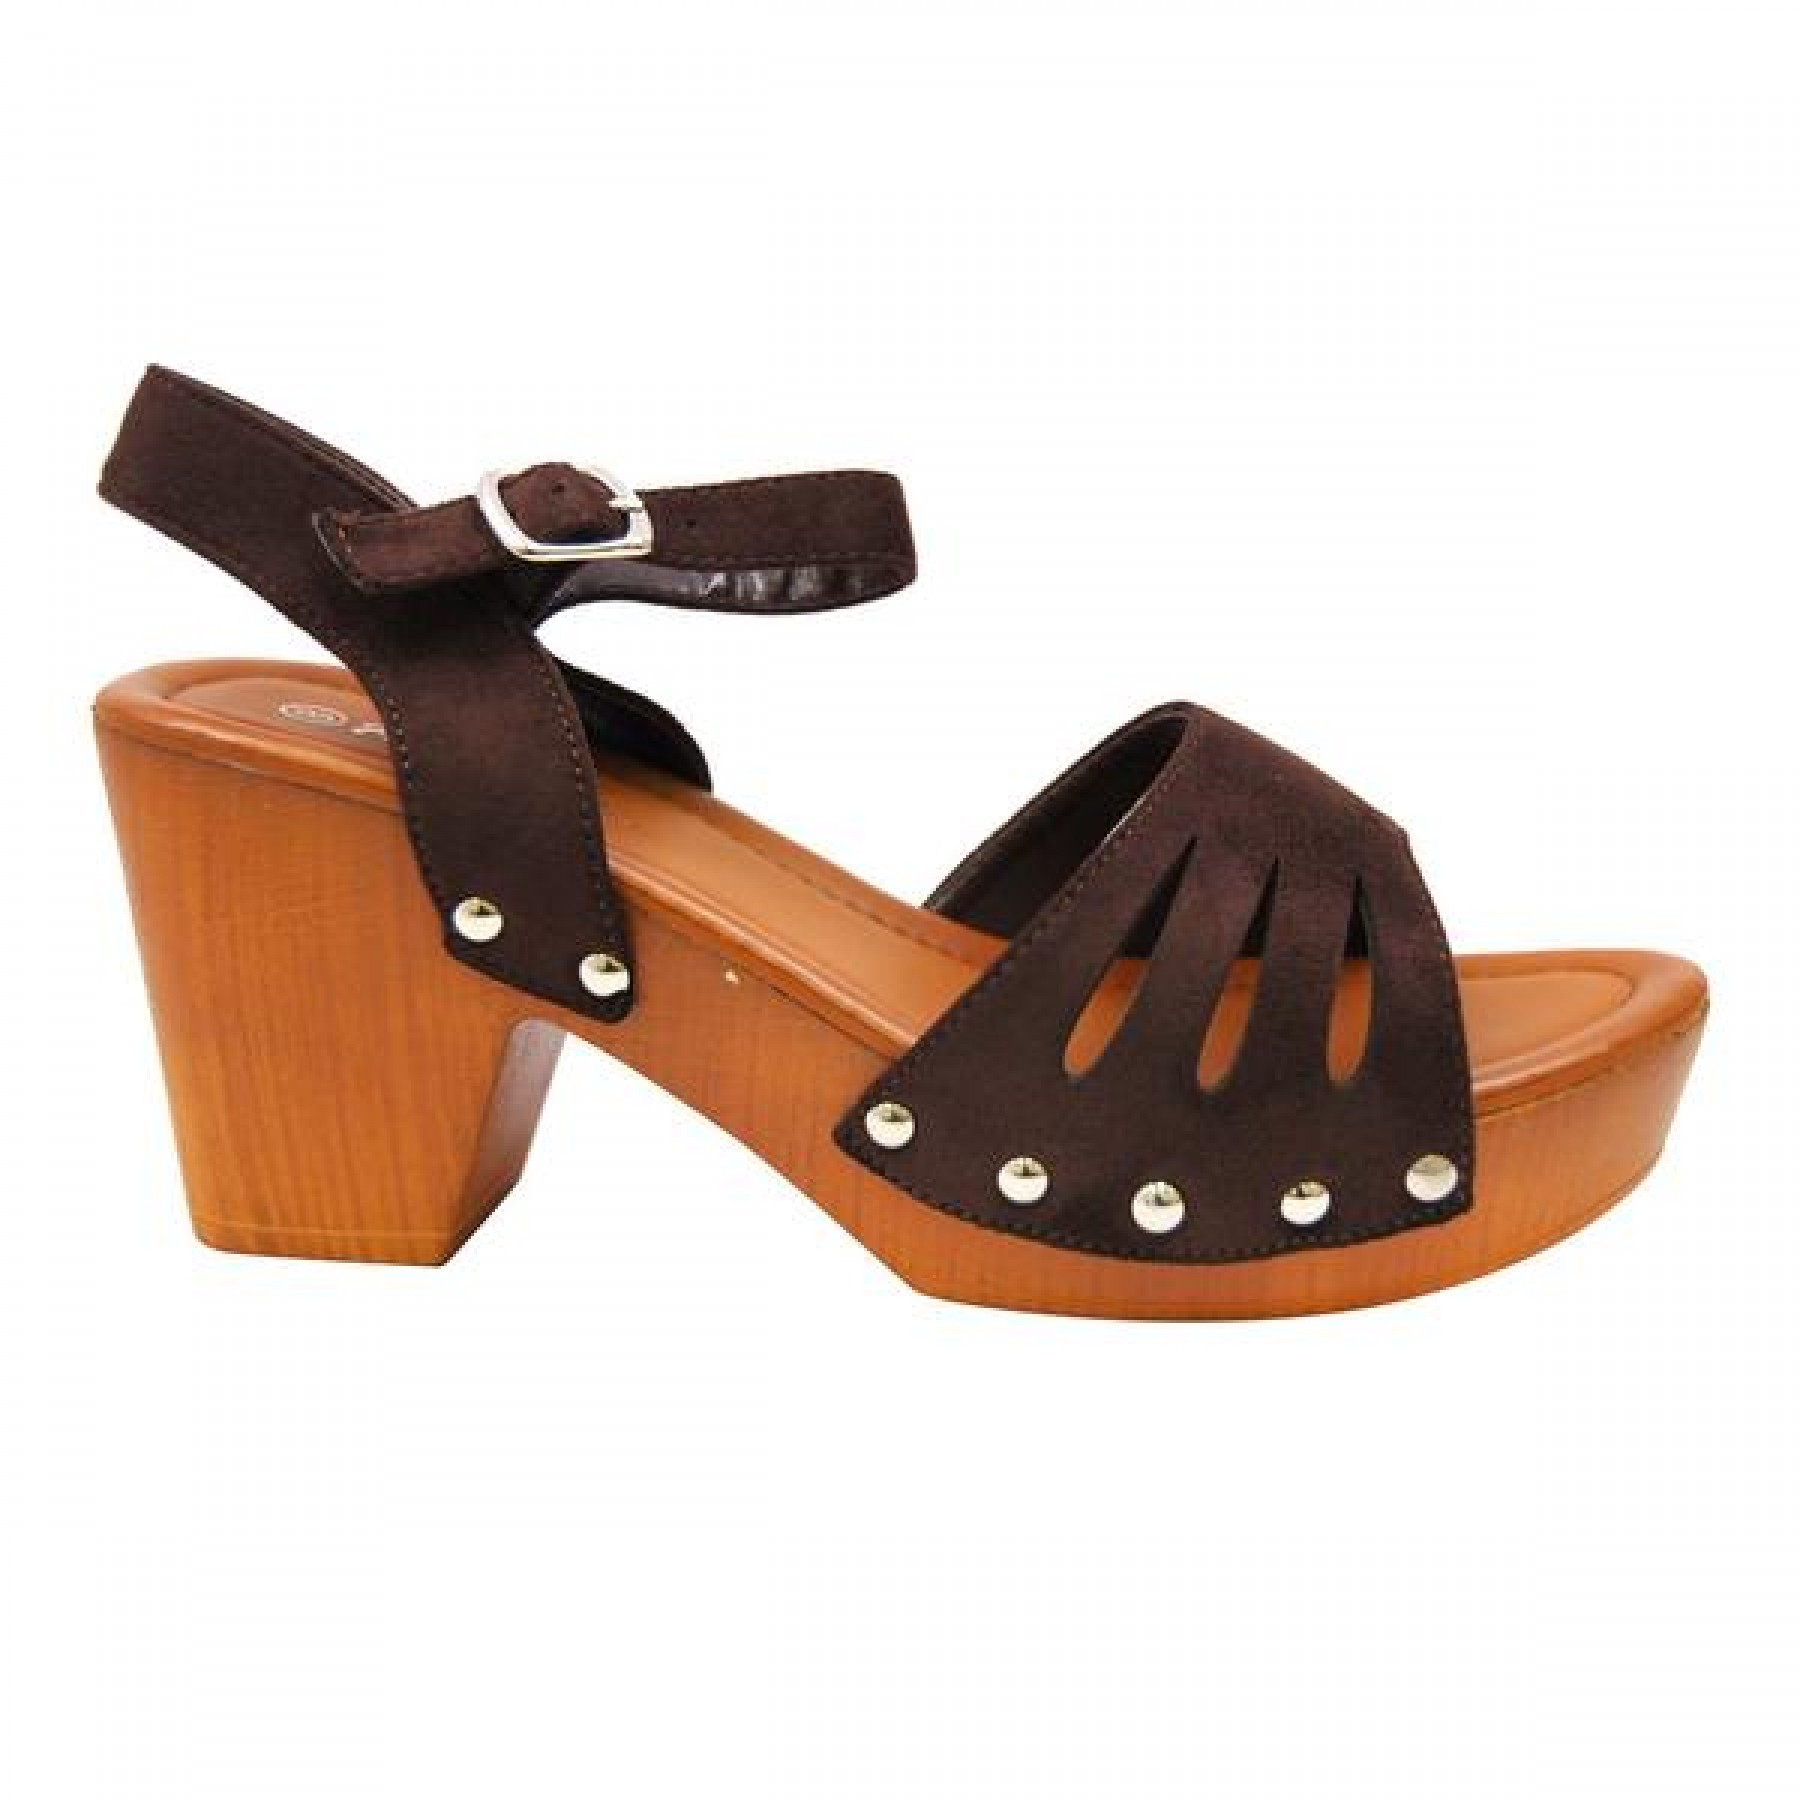 7ab5d1206e6 Women s Dark Brown Manmade Karrey 3-inch Heeled Sandal with ...